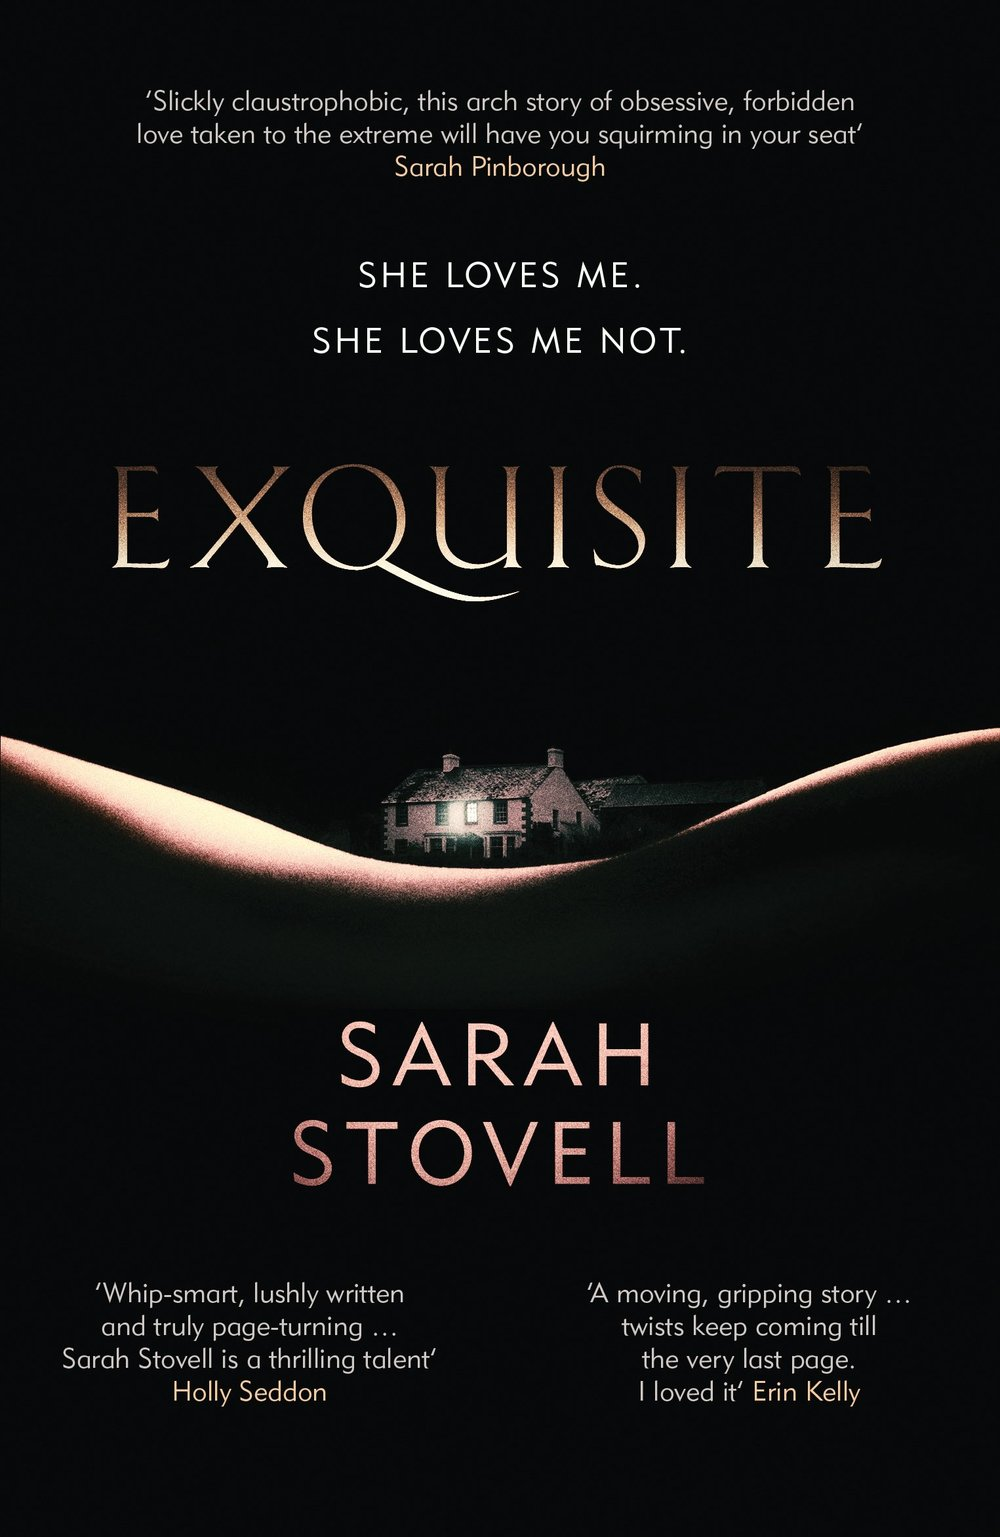 EXQUISITE Thriller, 320 pages Orenda, June 2017 Bo Luxton has it all - a loving family, a beautiful home in the Lake District, and a clutch of bestselling books to her name. Enter Alice Dark, an aspiring writer who is drifting through life, with a series of dead-end jobs and a freeloading boyfriend. When they meet at a writers' retreat, the chemistry is instant, and a sinister relationship develops... Or does it?